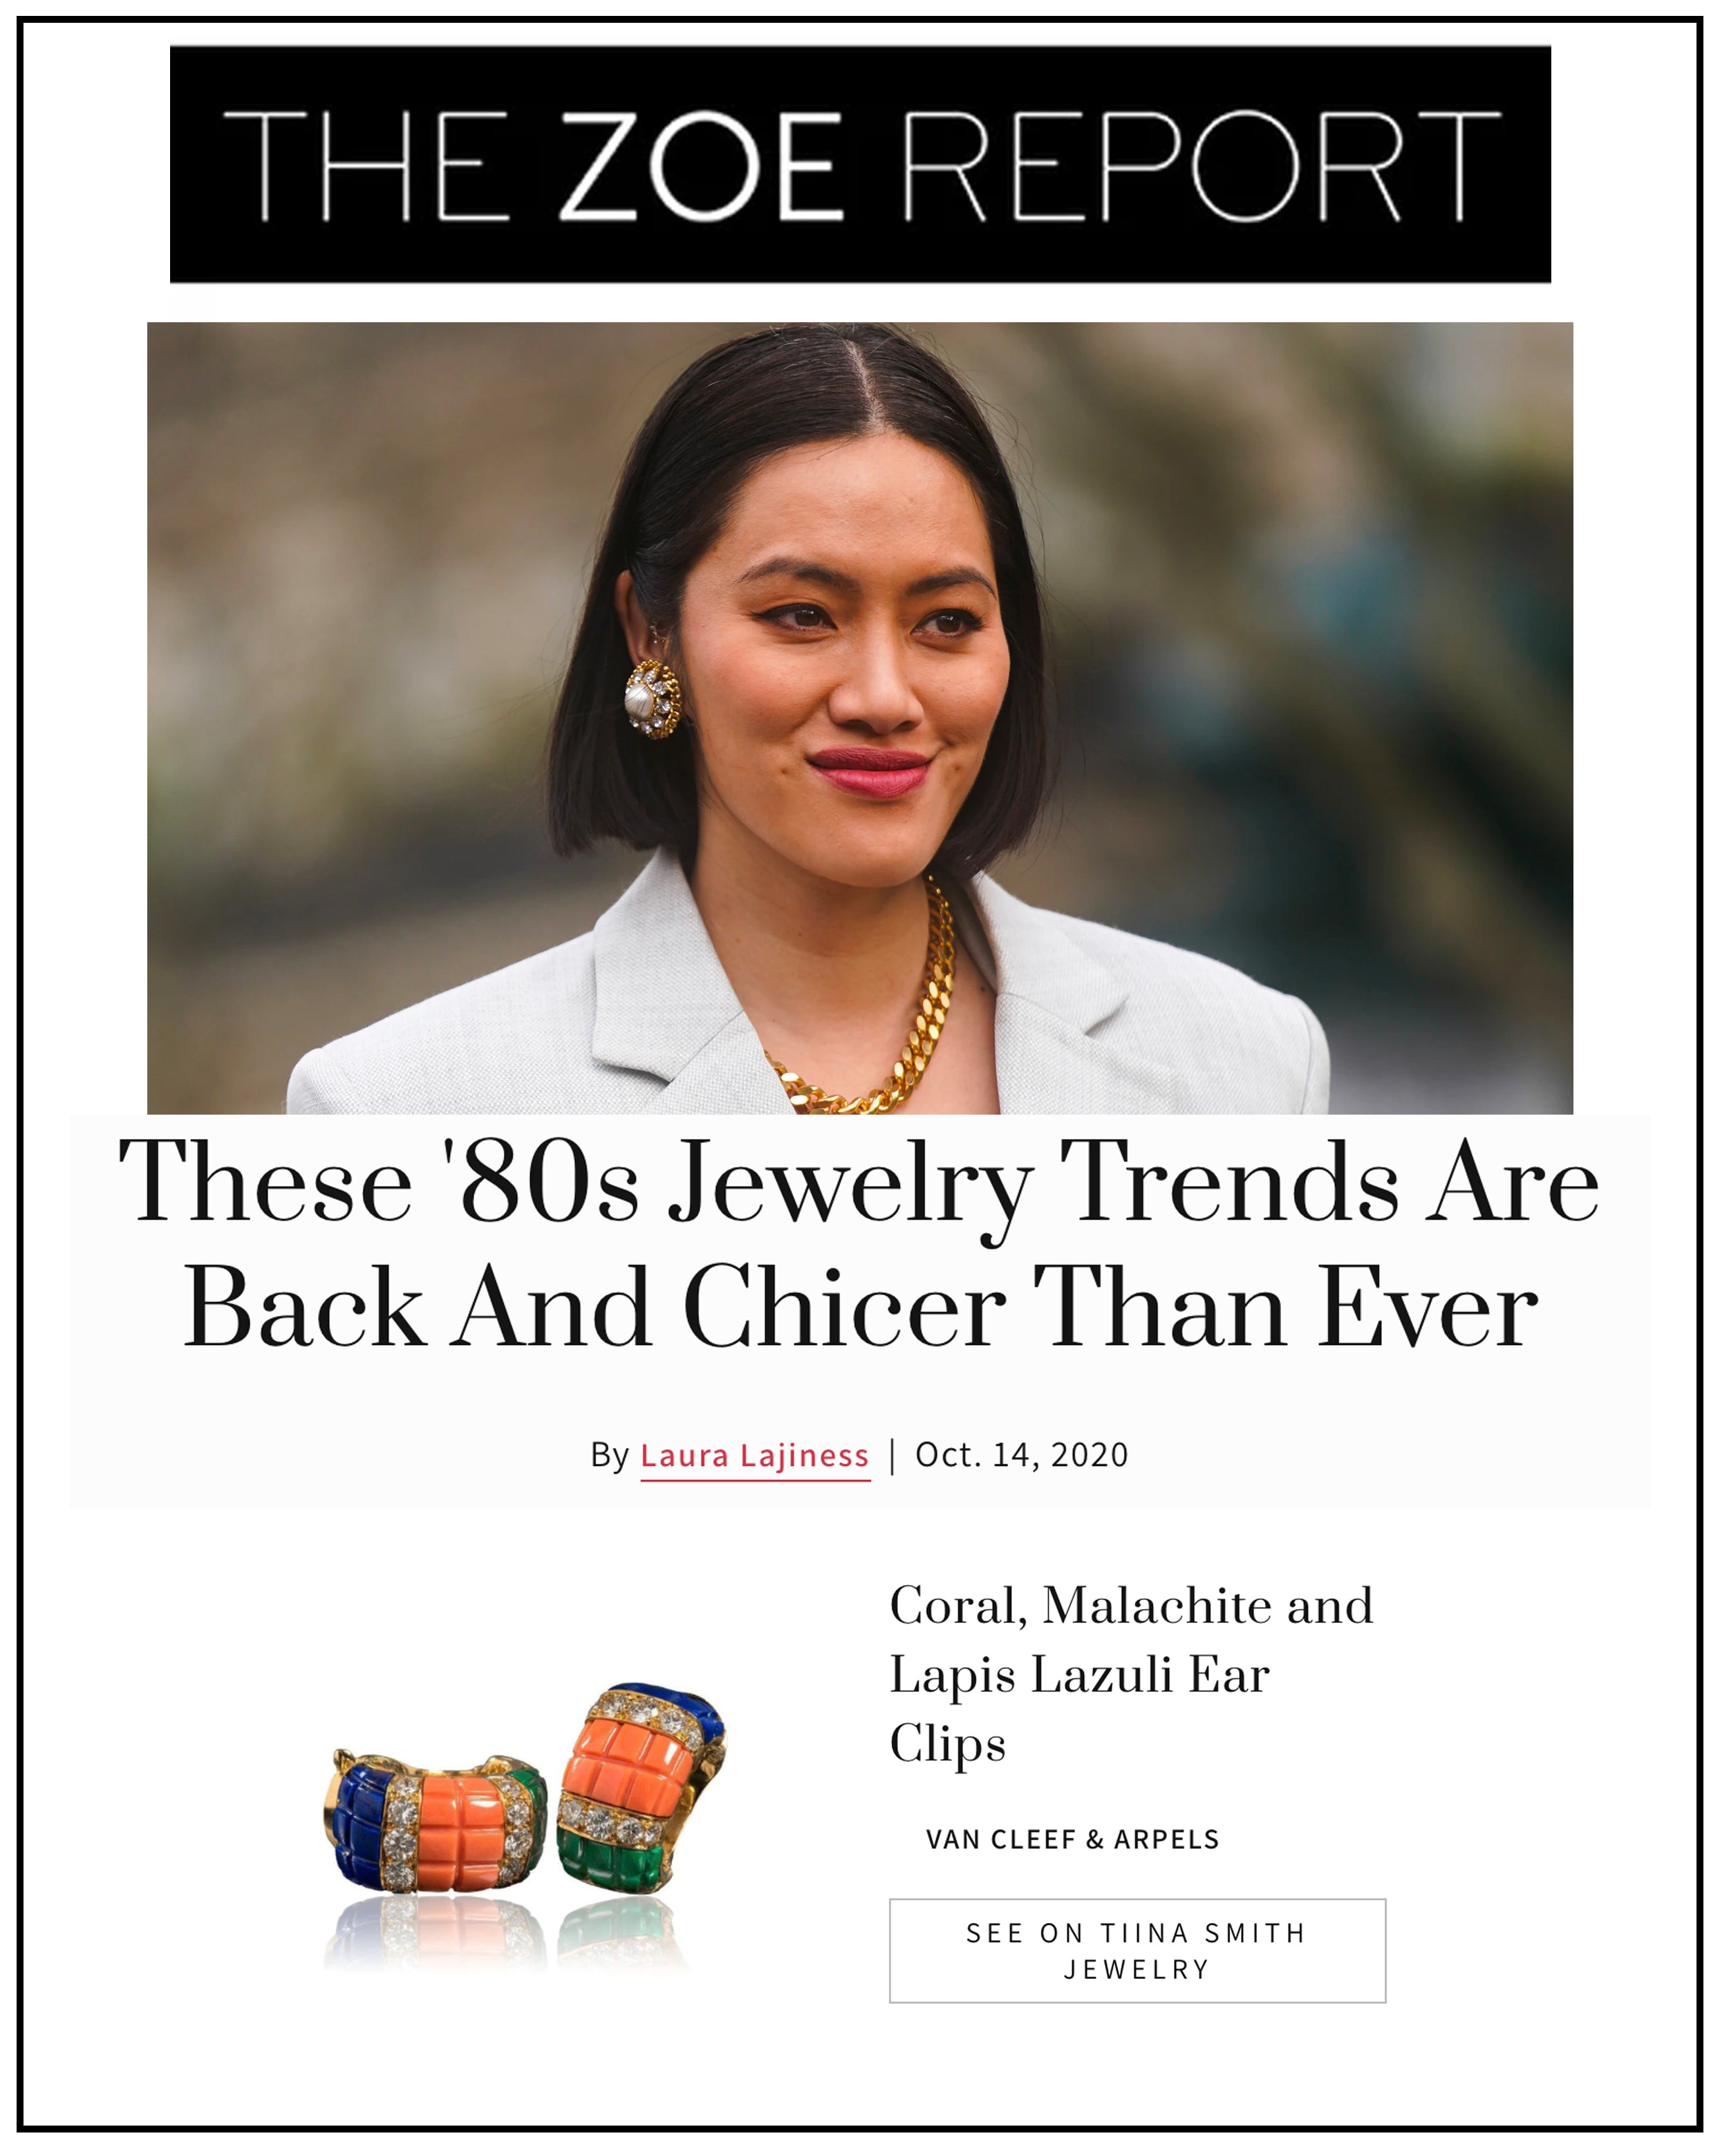 https://www.thezoereport.com/p/these-80s-jewelry-trends-are-back-chicer-than-ever-34982937